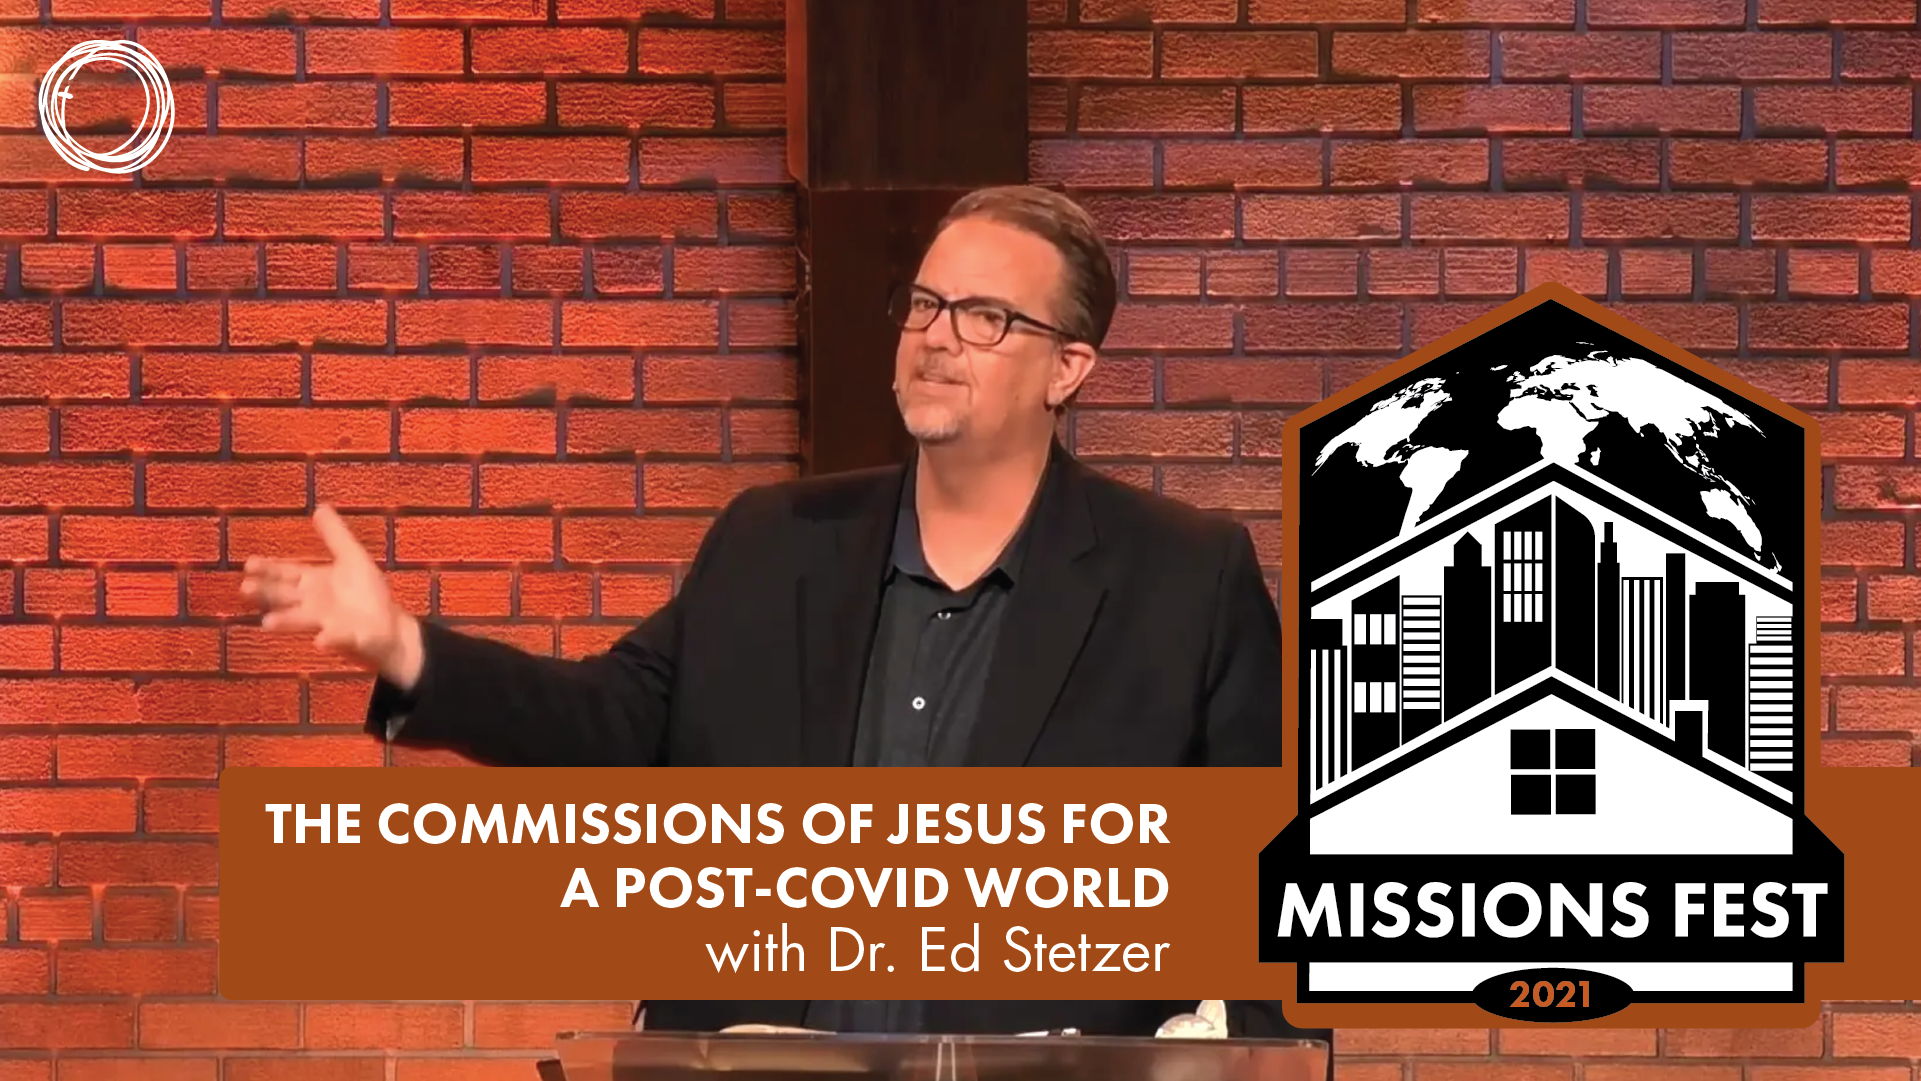 The Commissions of Jesus for a Post-Covid World